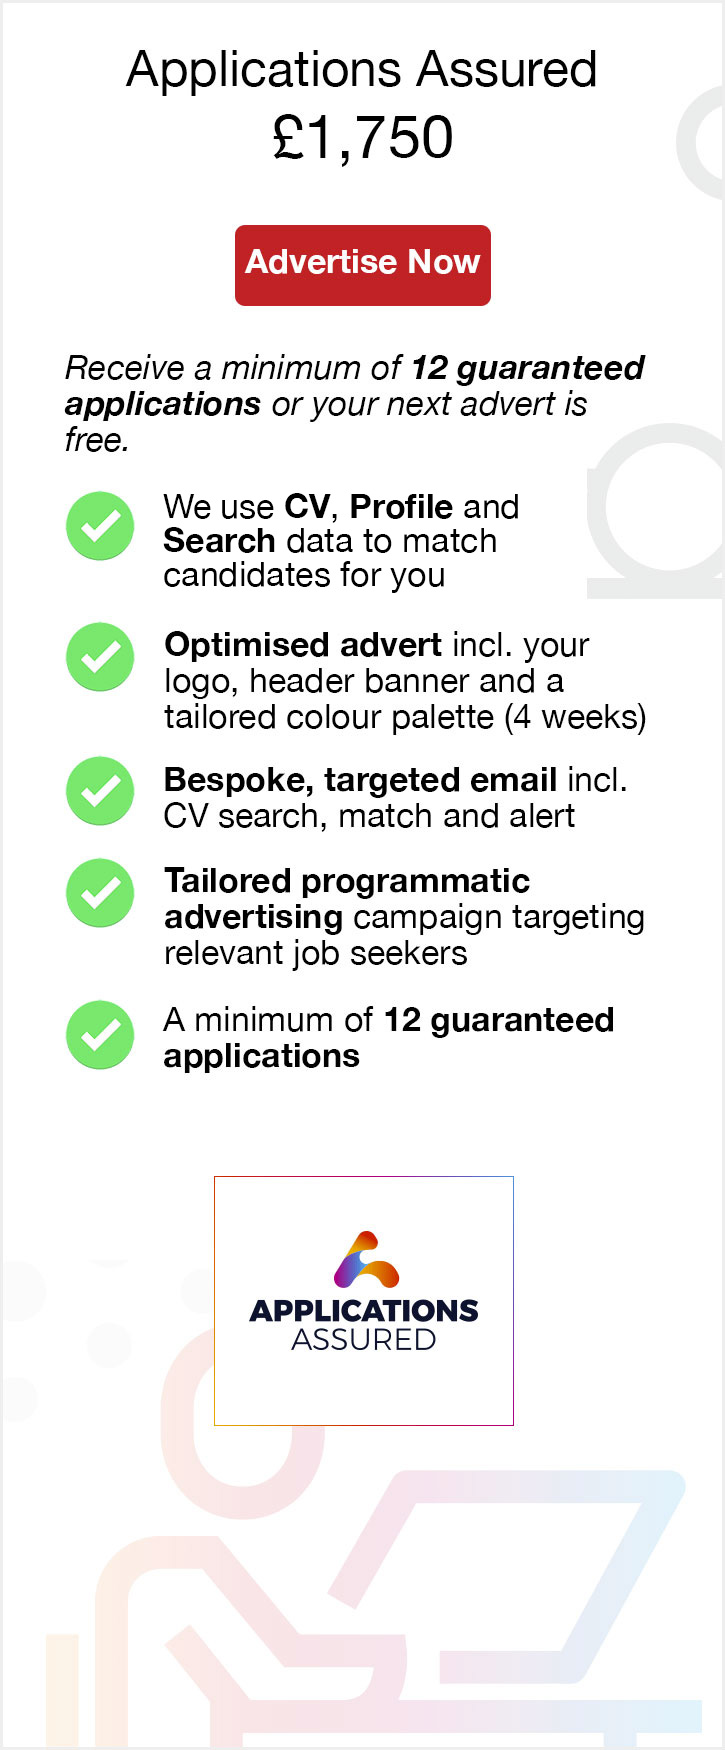 Applications Assured. £1,750. Advertise Now. Receive a minimum of 12 guaranteed applications or your next advert free. We use CV, Profile and Search data to match candidates for you. Optimised advert including your logo, header banner and a tailored colour palette (4 weeks). Bespoke, targeted email including CV search, match and alert. Tailored programmatic advertising campaign targeting relevant job seekers. A minimum of 12 guaranteed applications. Applications Assured.